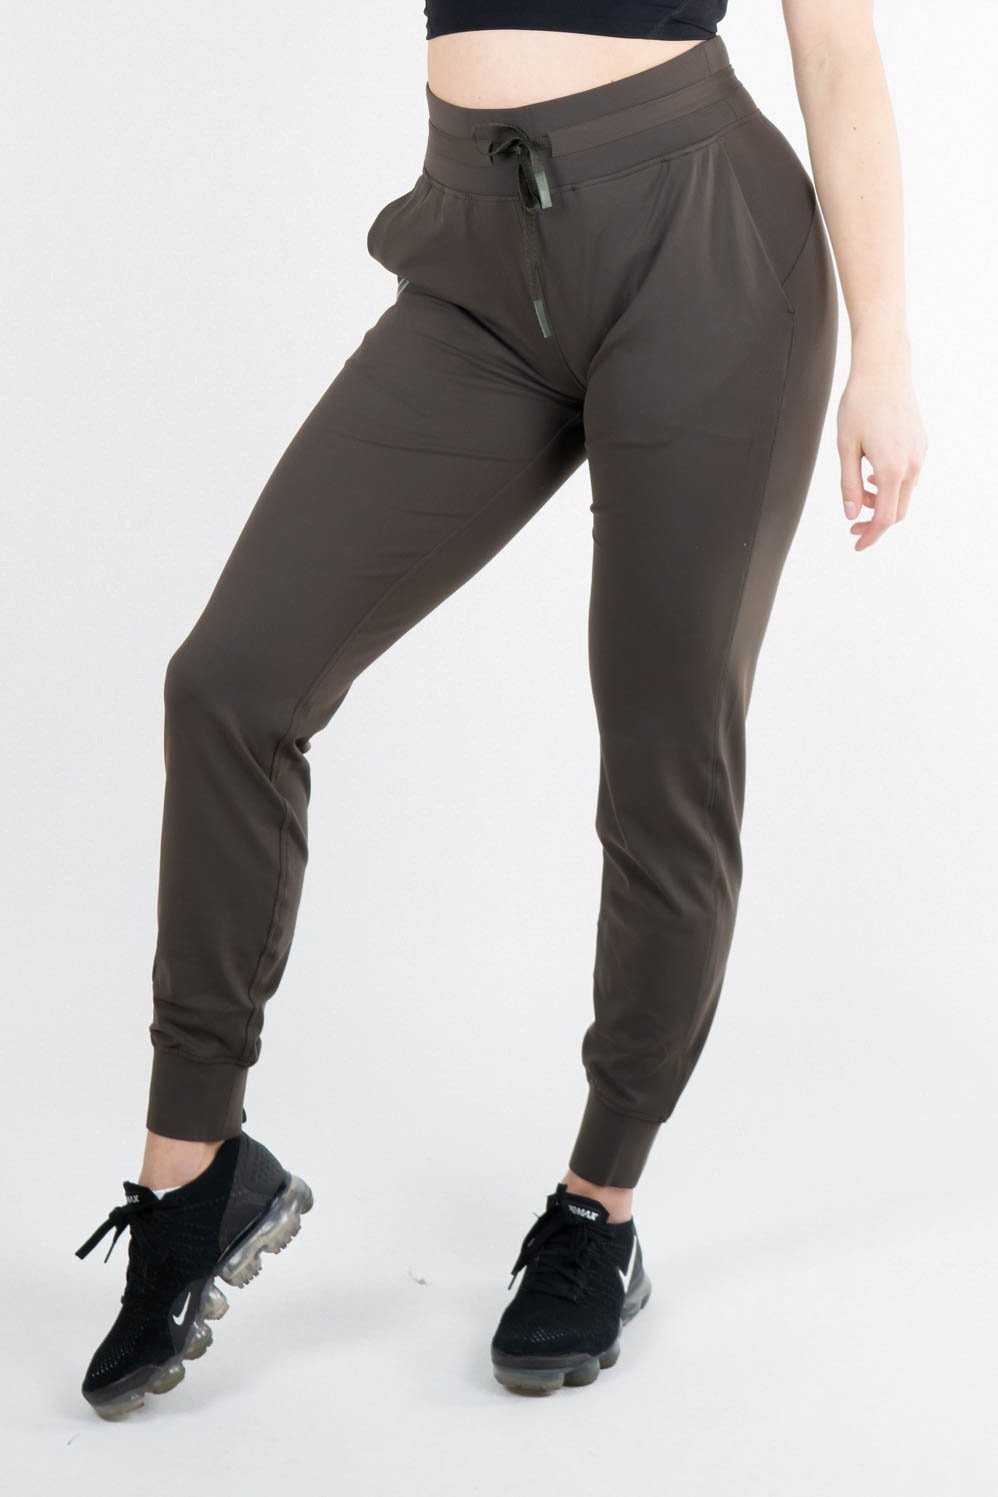 Oria Jogger Dark Olive - Own-Wear